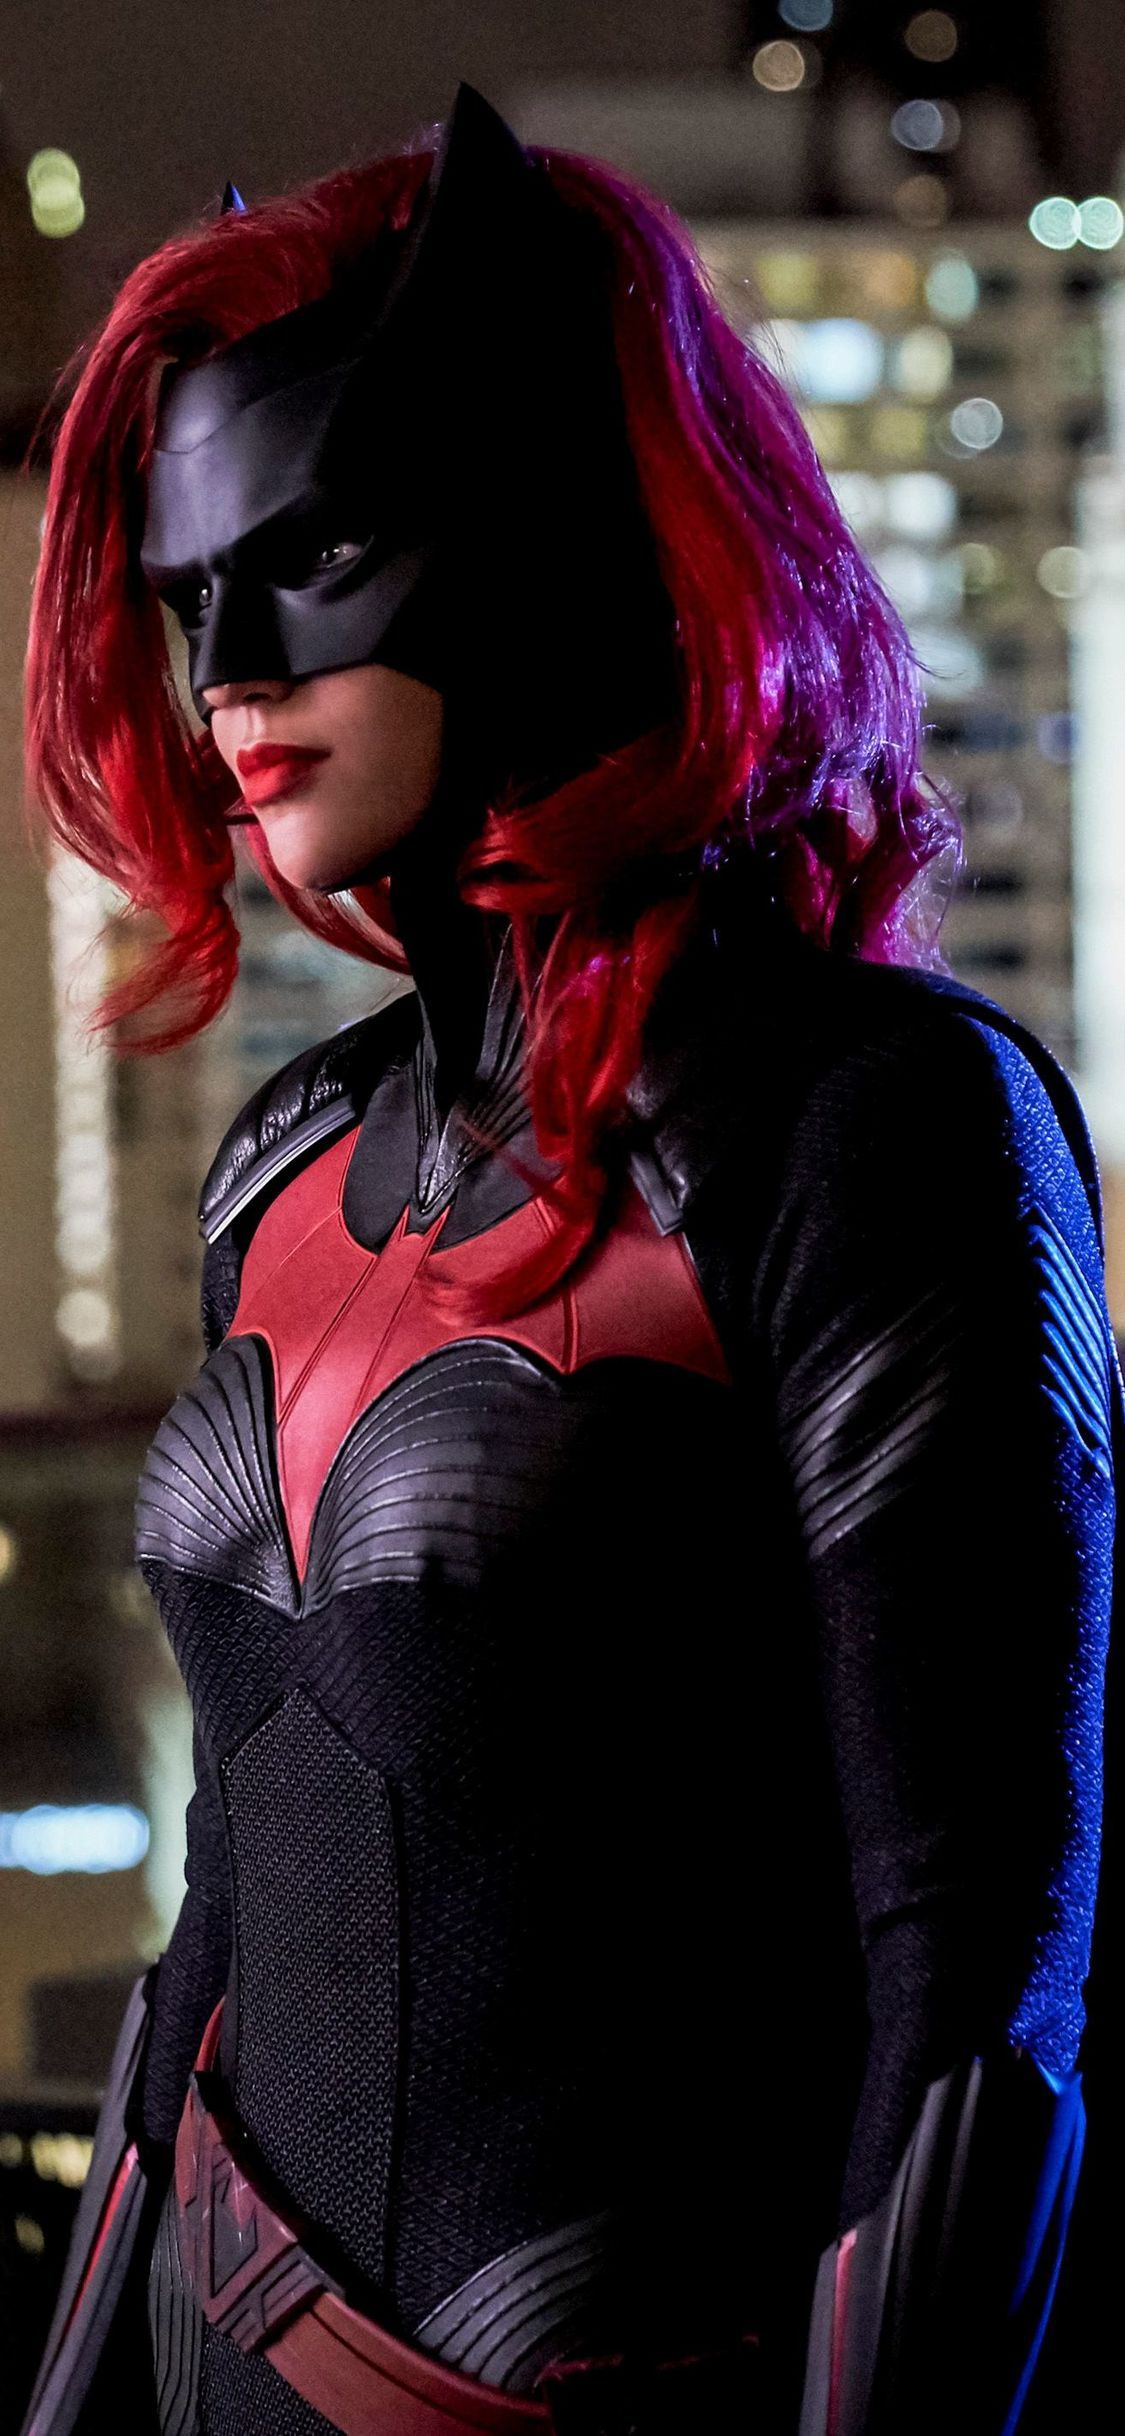 1125x2436 Ruby Rose As Batwoman 4k Iphone Xs Iphone 10 Iphone X Hd 4k Wallpapers Images Backgrounds Photos And Pictures Batwoman Ruby Rose Comic Movies